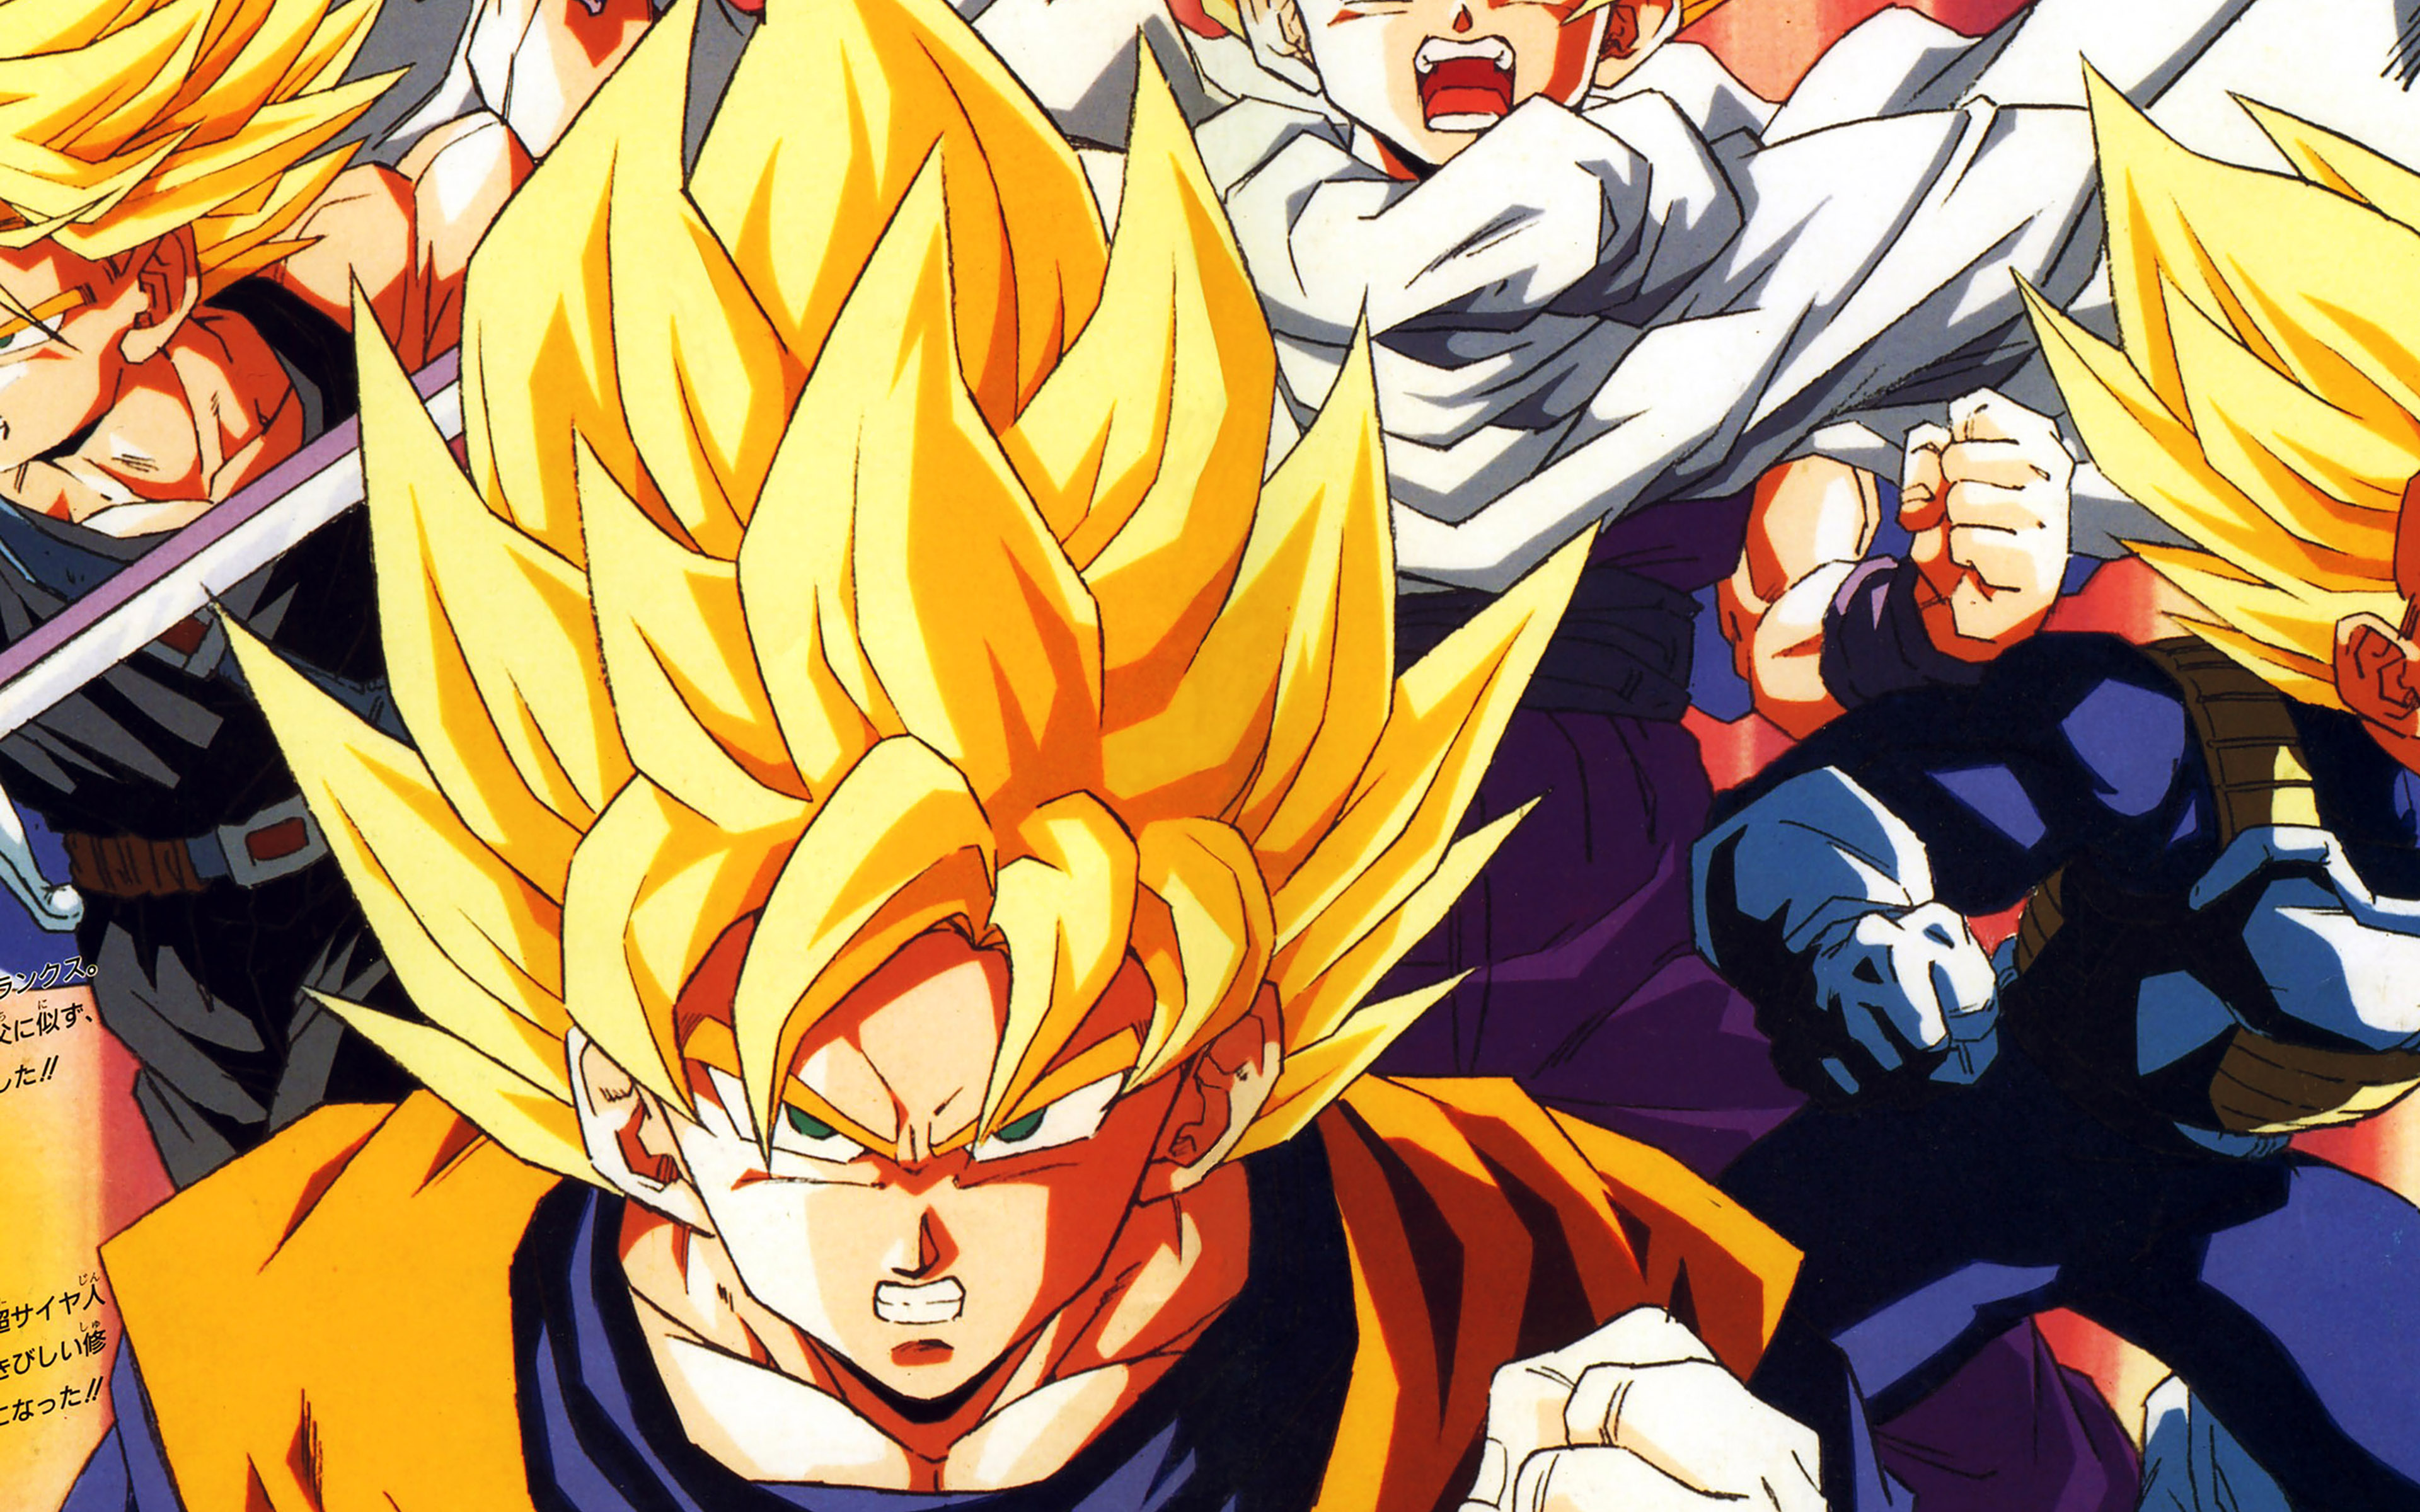 Ab92 Wallpaper Dragonball Z Goku Fire Anime Papers Co